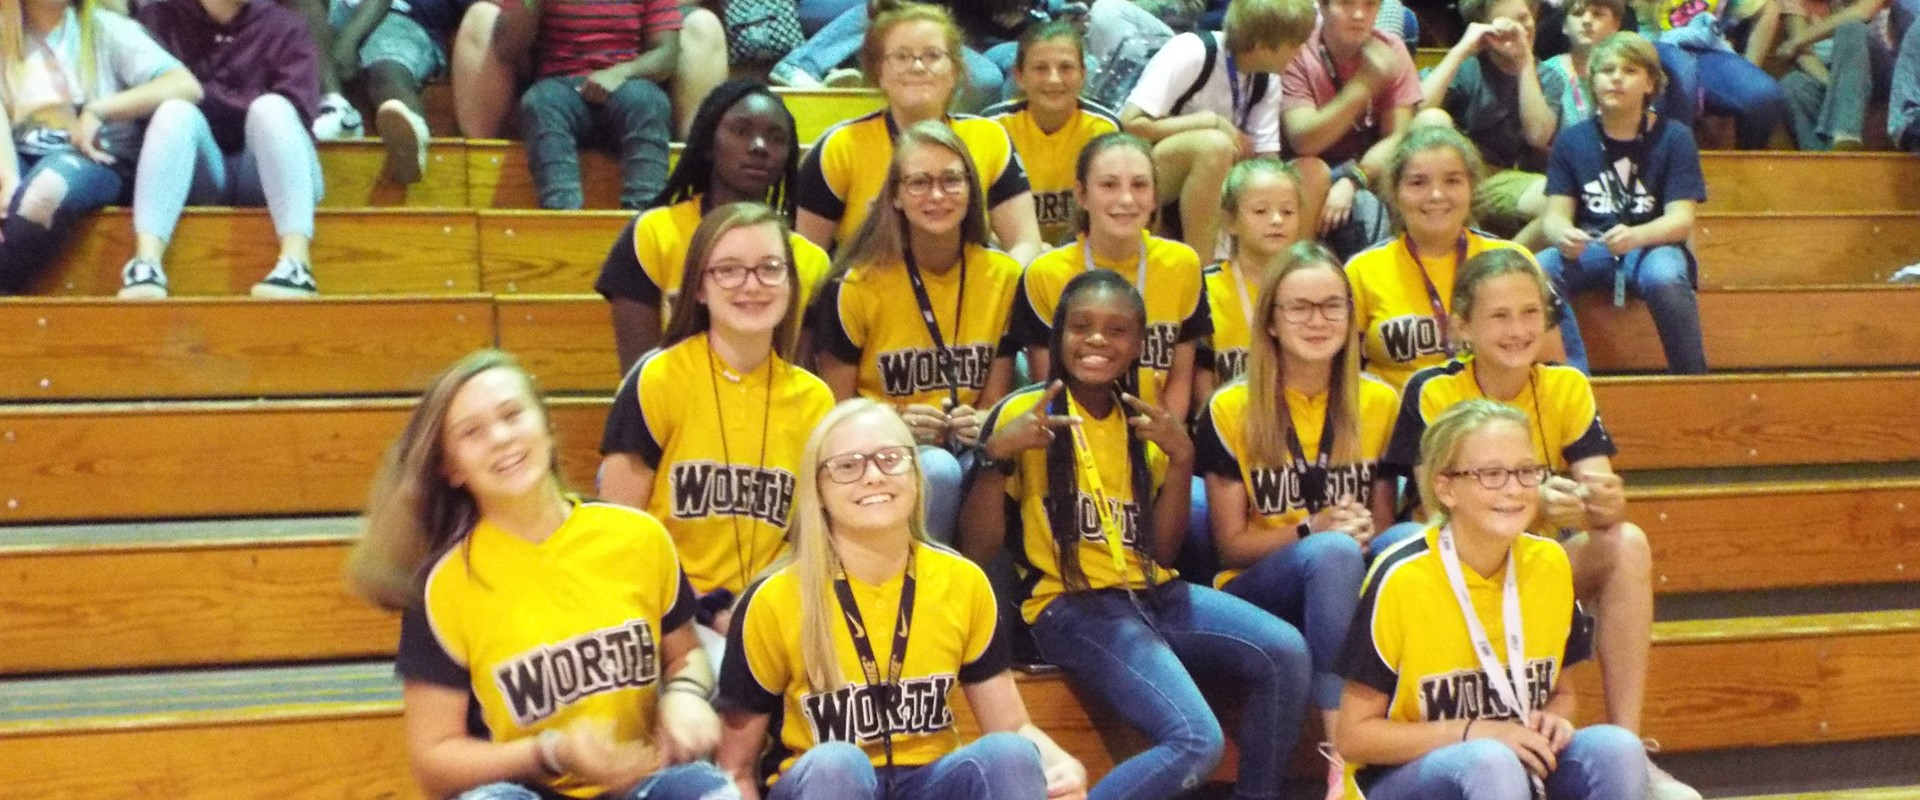 WCMS Softball Team at Pep Rally